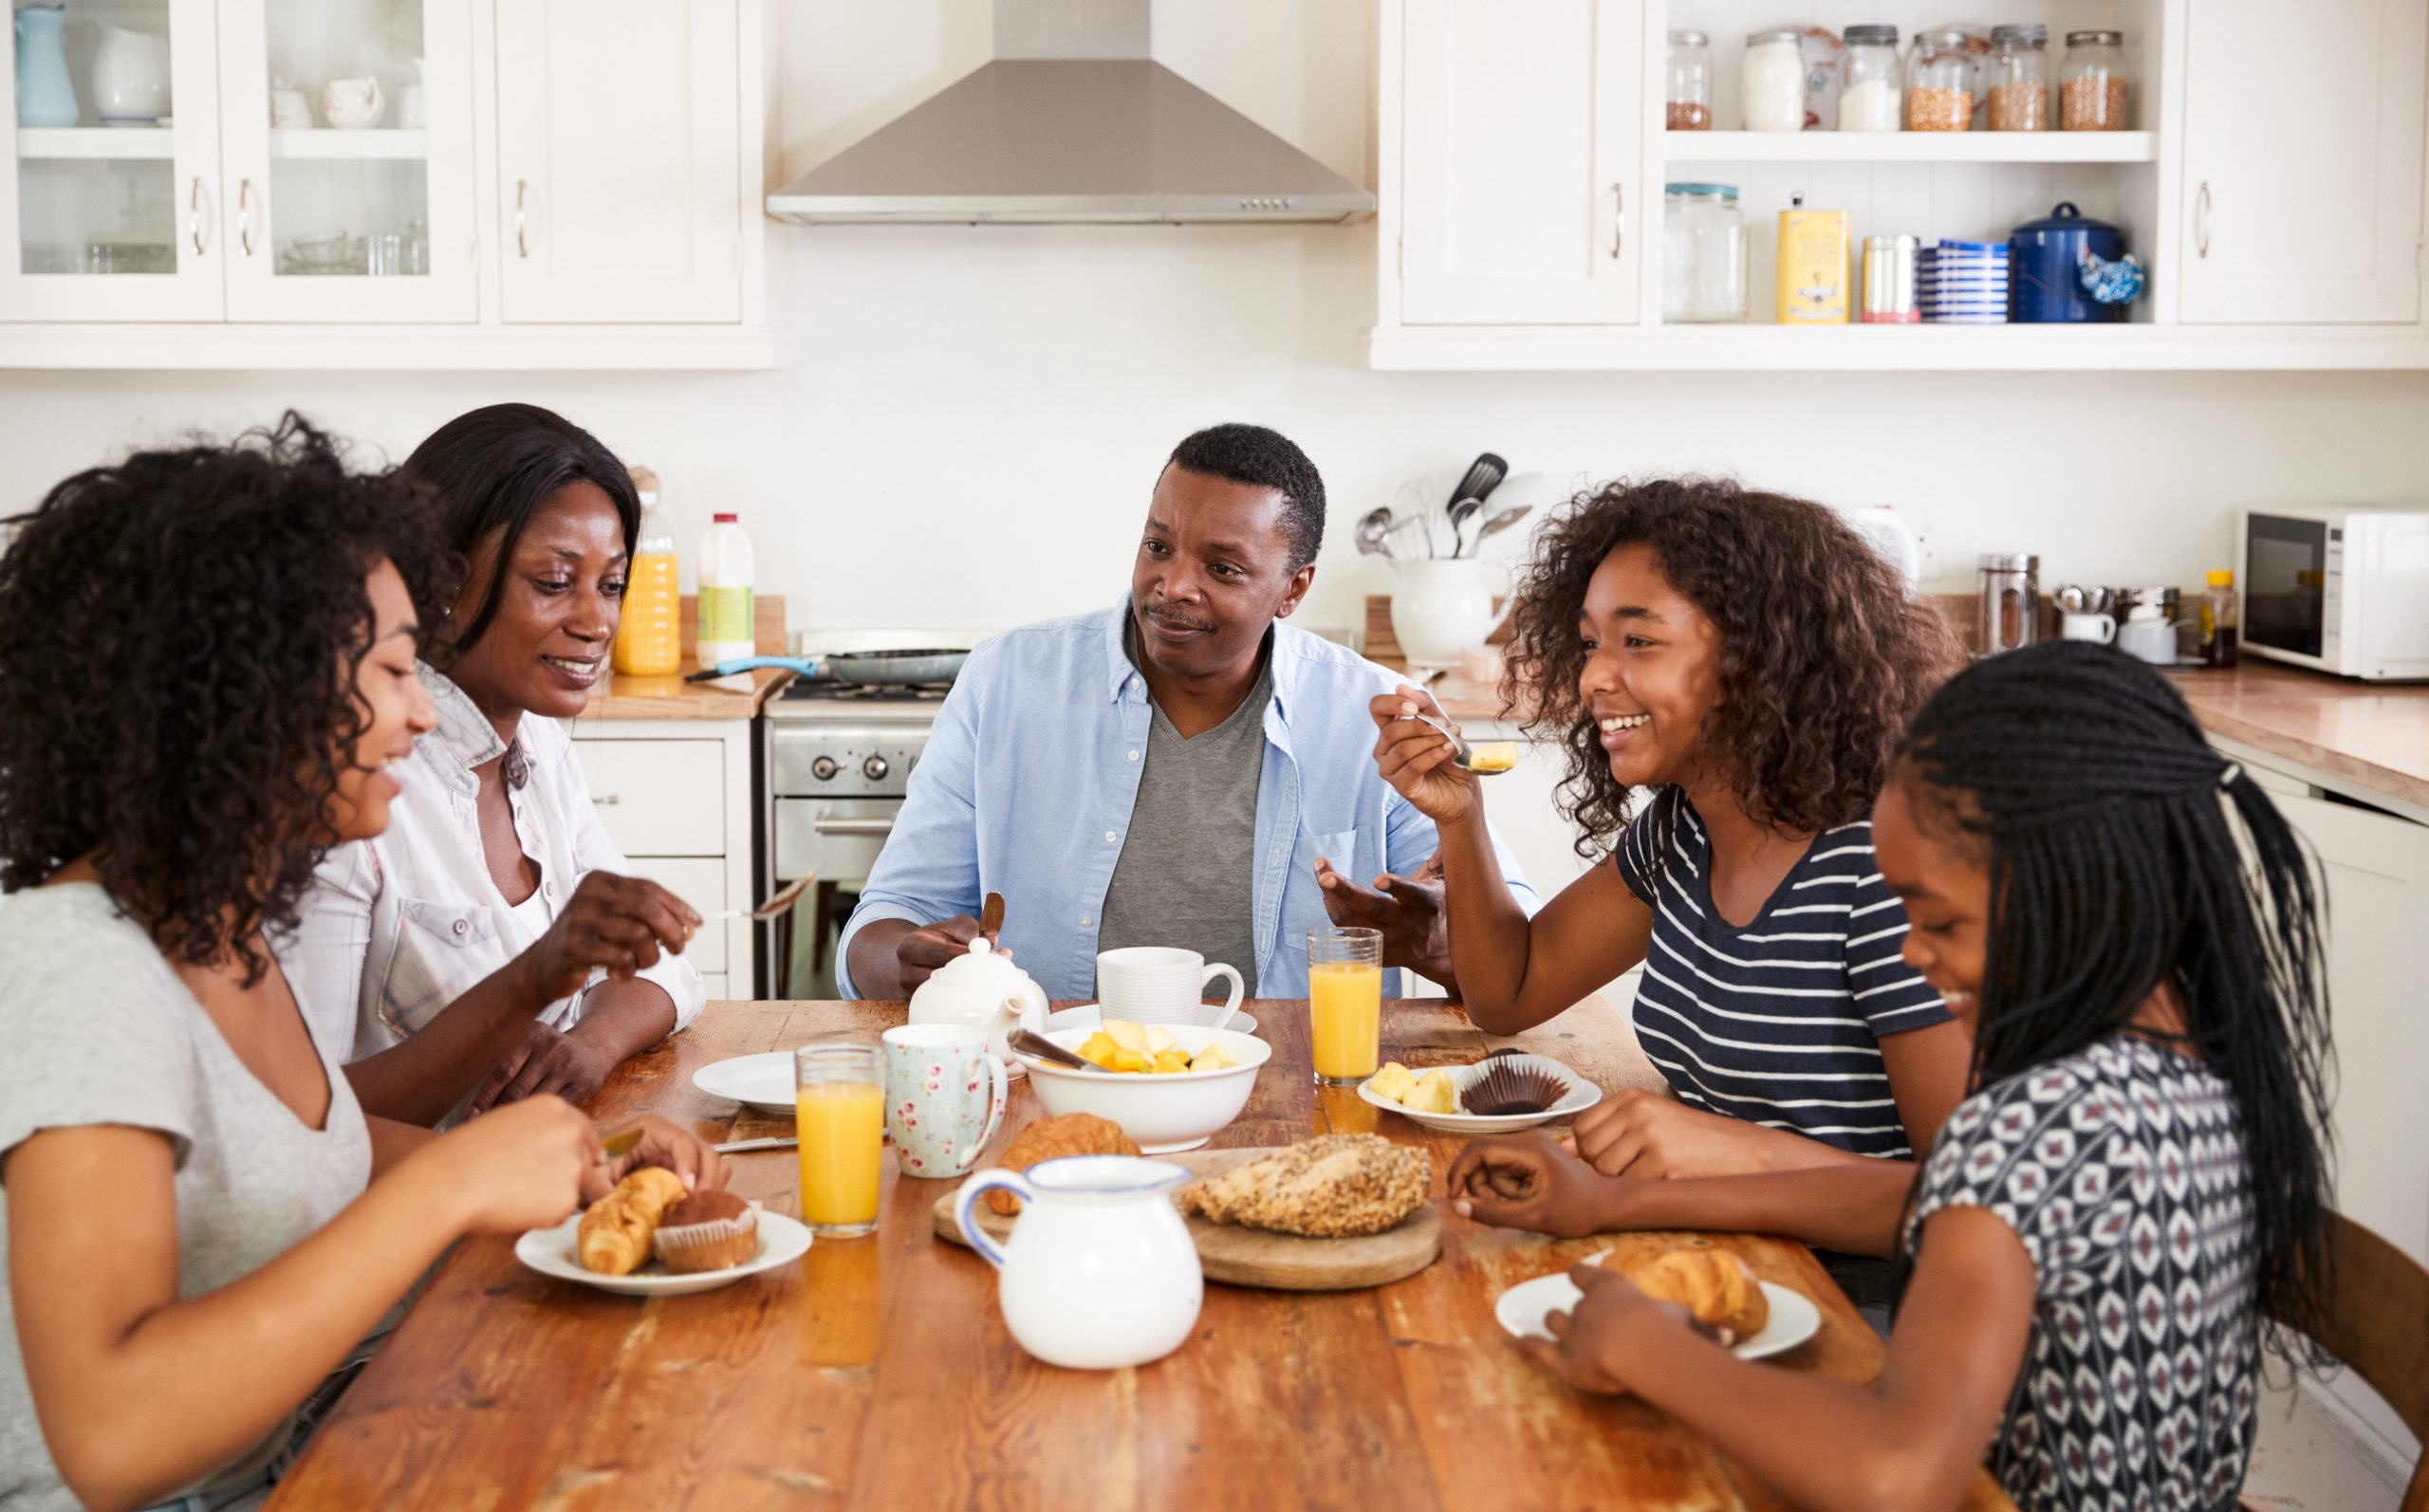 Vertical explainer photo 3 - Family With Teenage Children Eating Breakfast In Kitchen / Photo Credit: Monkey Business Images, Shutterstock